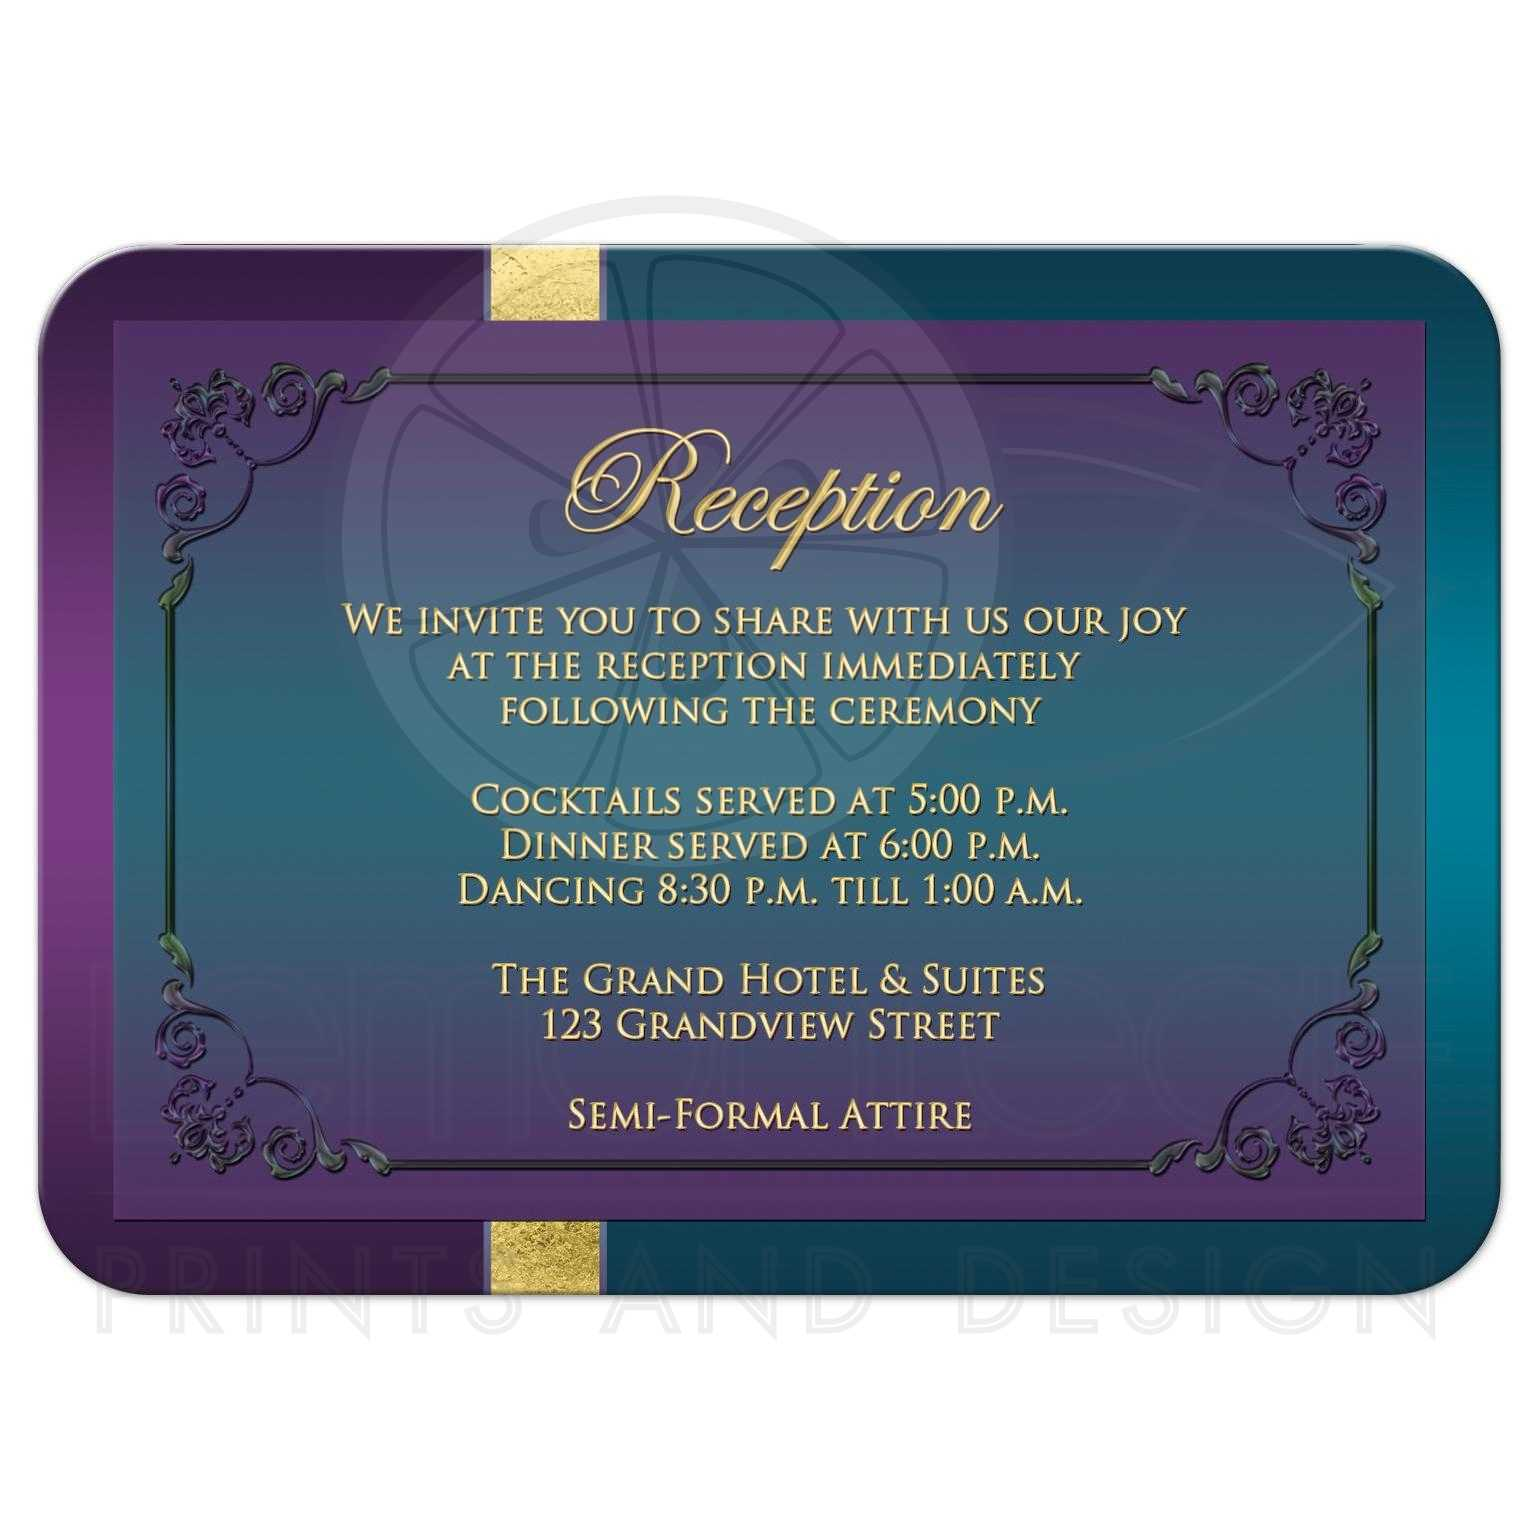 Teal Wedding Ideas For Reception: Wedding Reception Enclosure Card